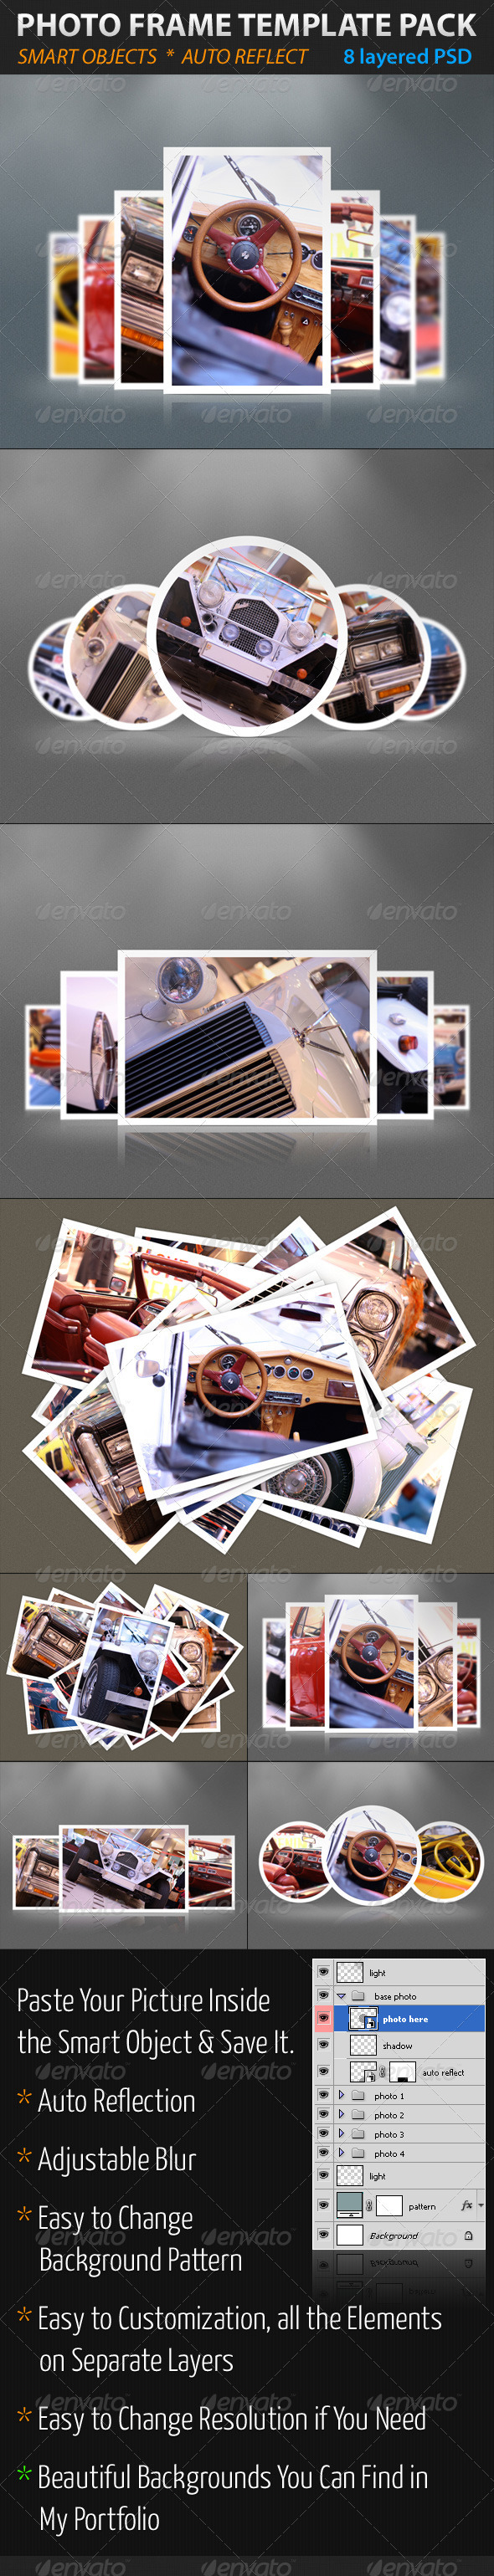 GraphicRiver Photo Frame Template Pack 1596667